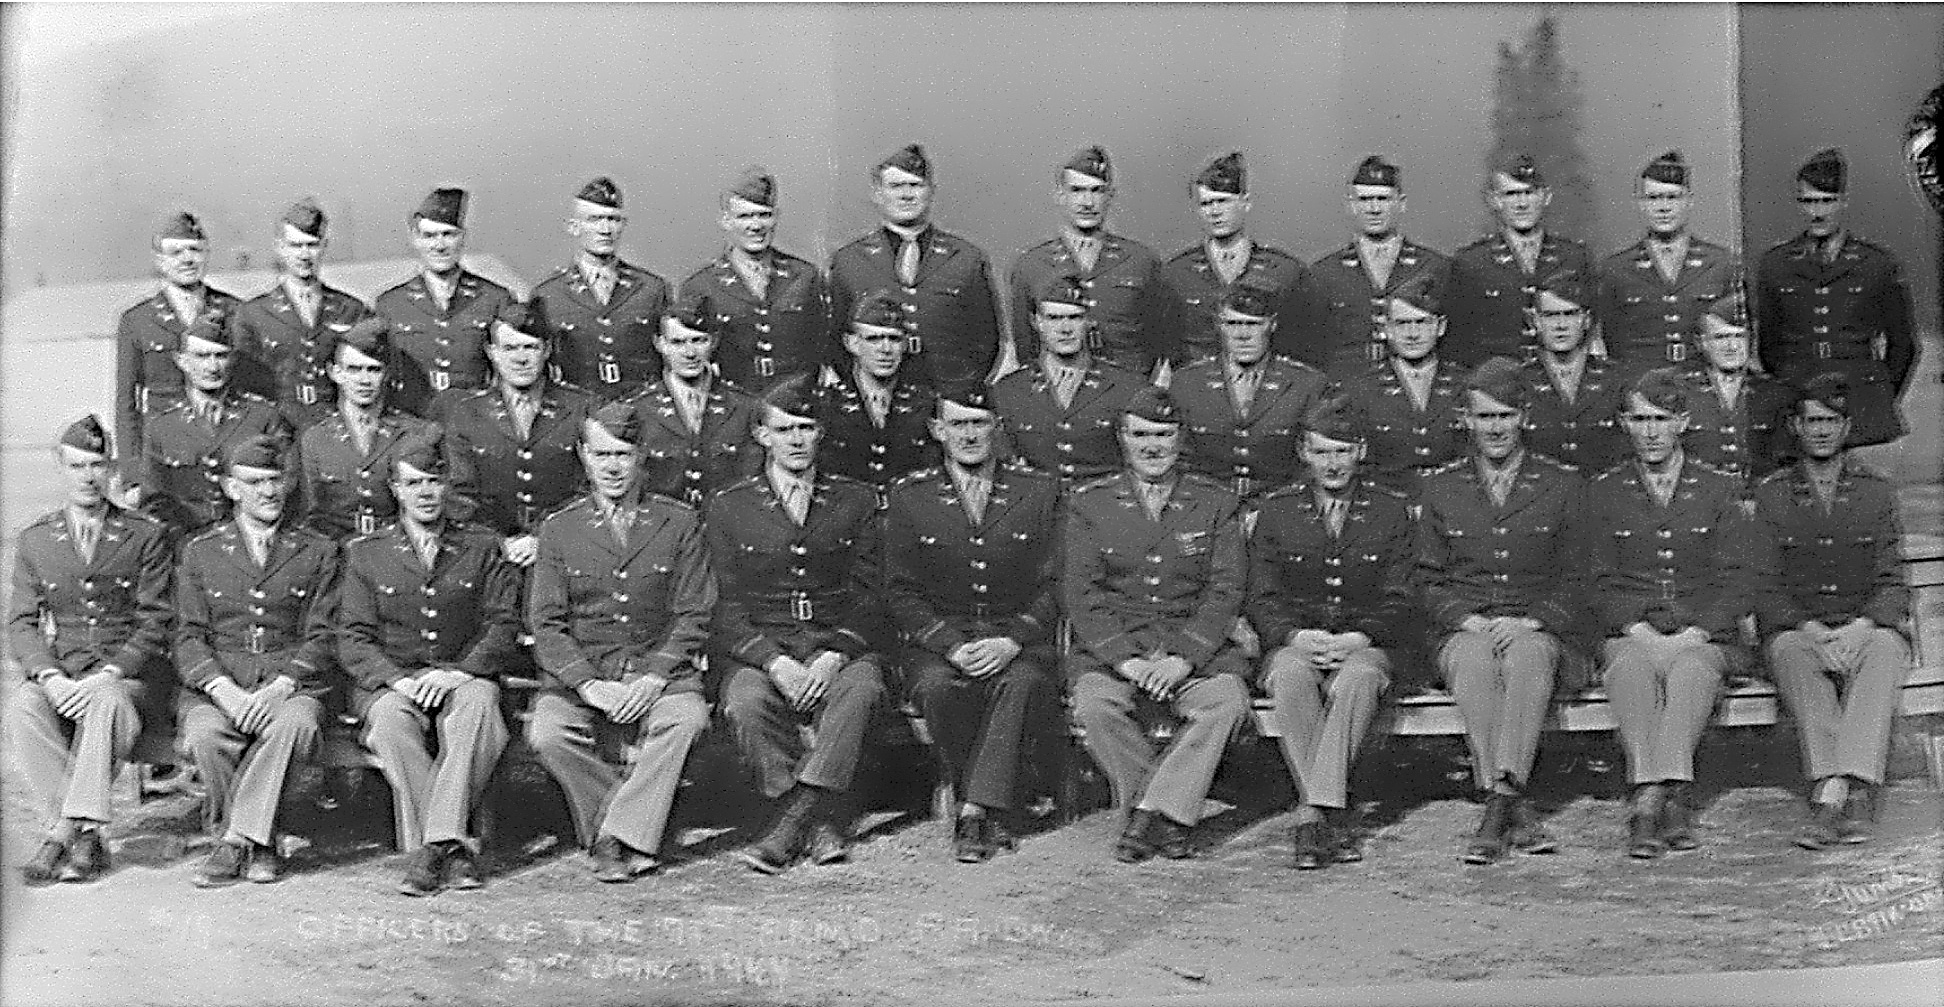 Officers of the 71st AFA